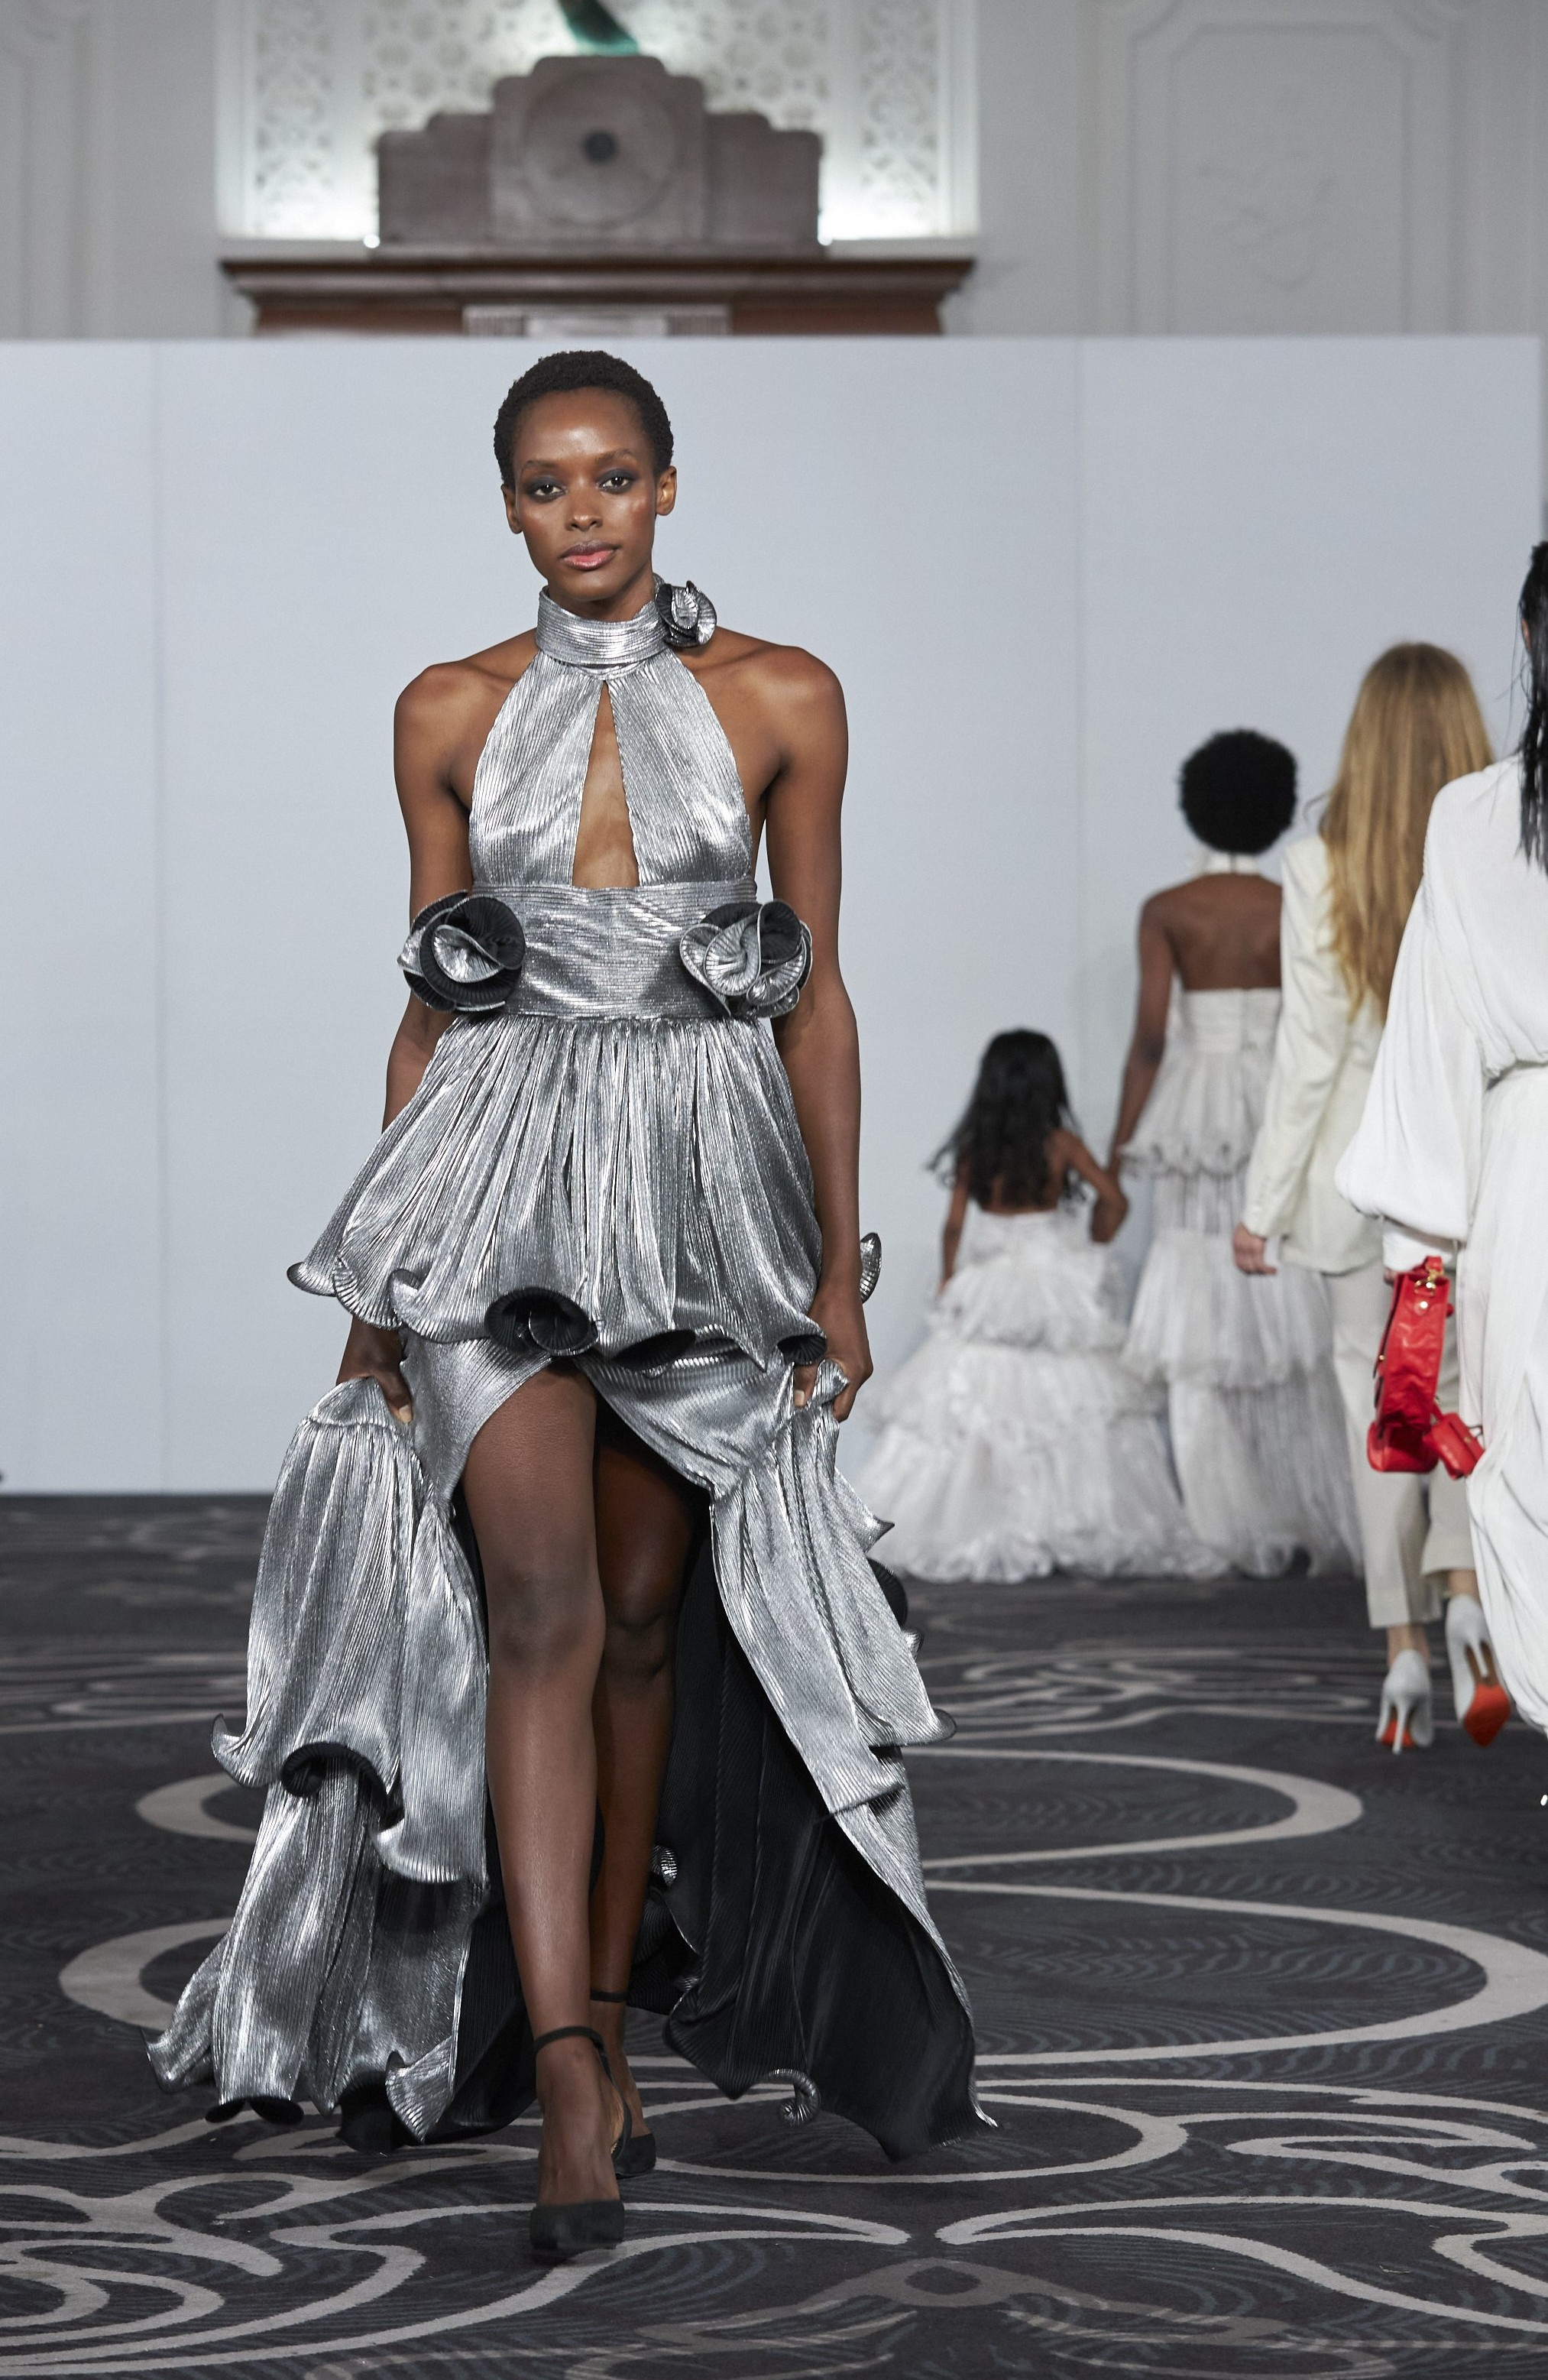 Naeem Anthony launches his designer brand Helen Anthony with his  Spring/Summer 2022 collection